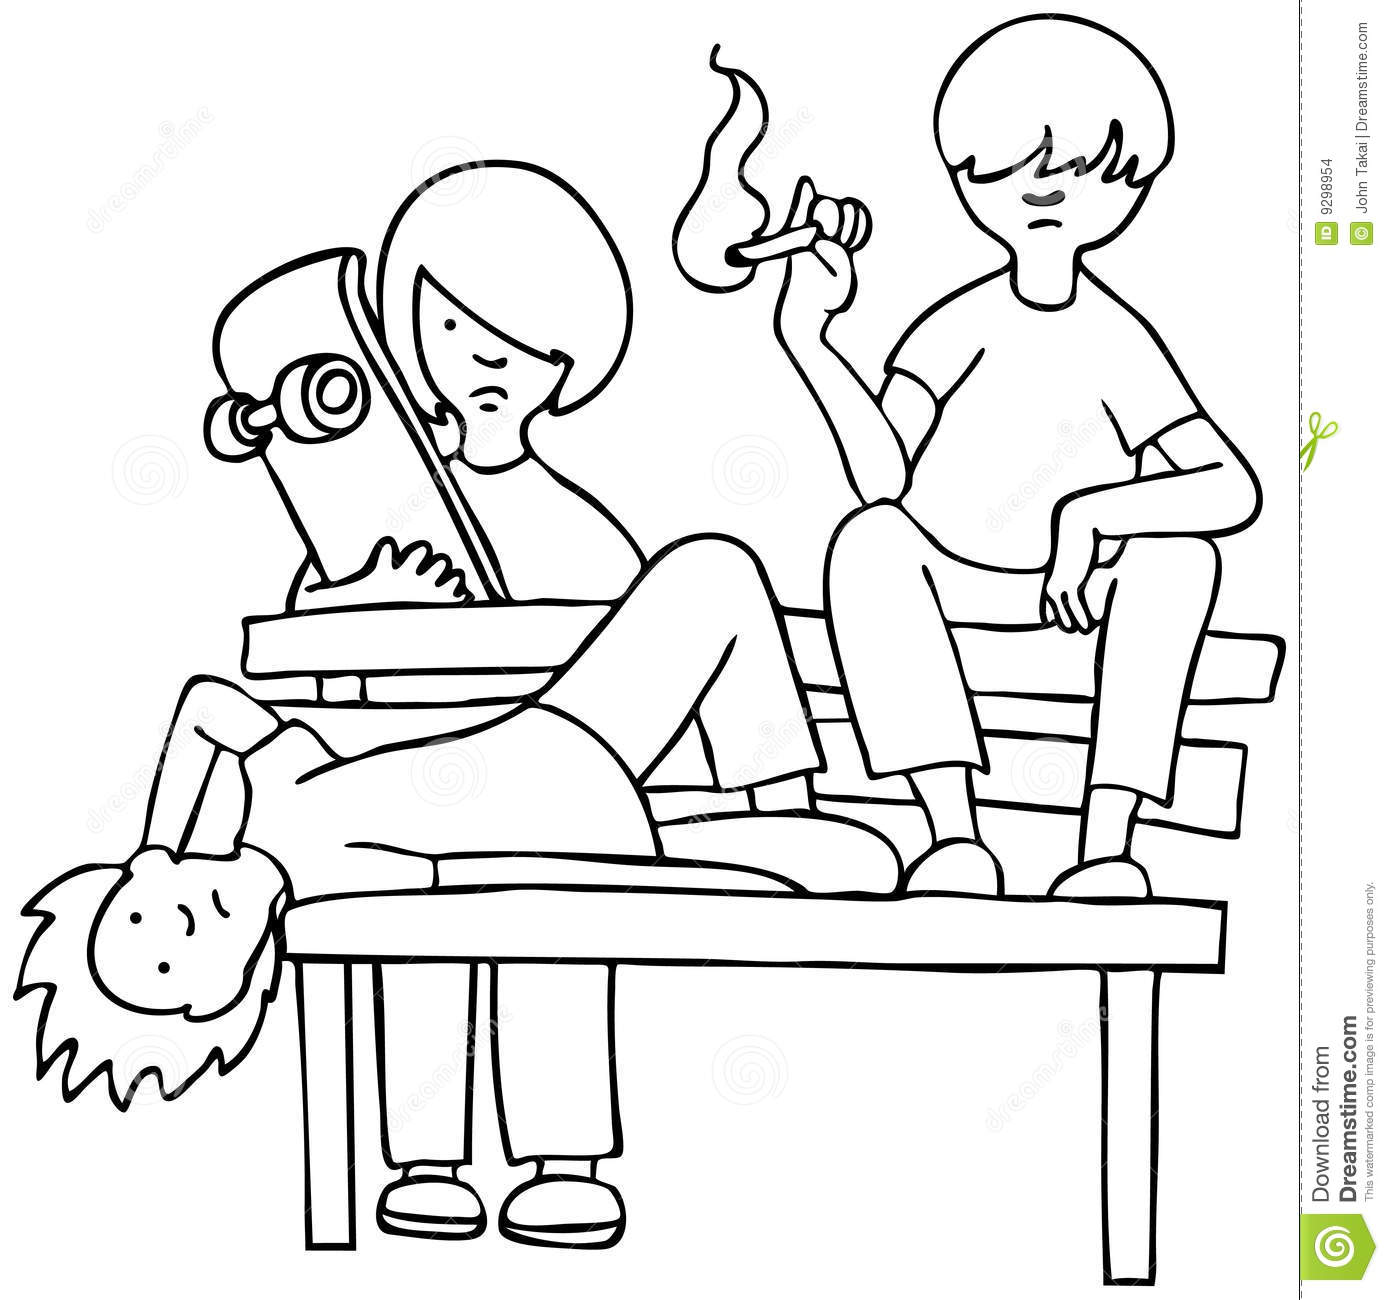 Bored Kids Black And White Stock Vector Illustration